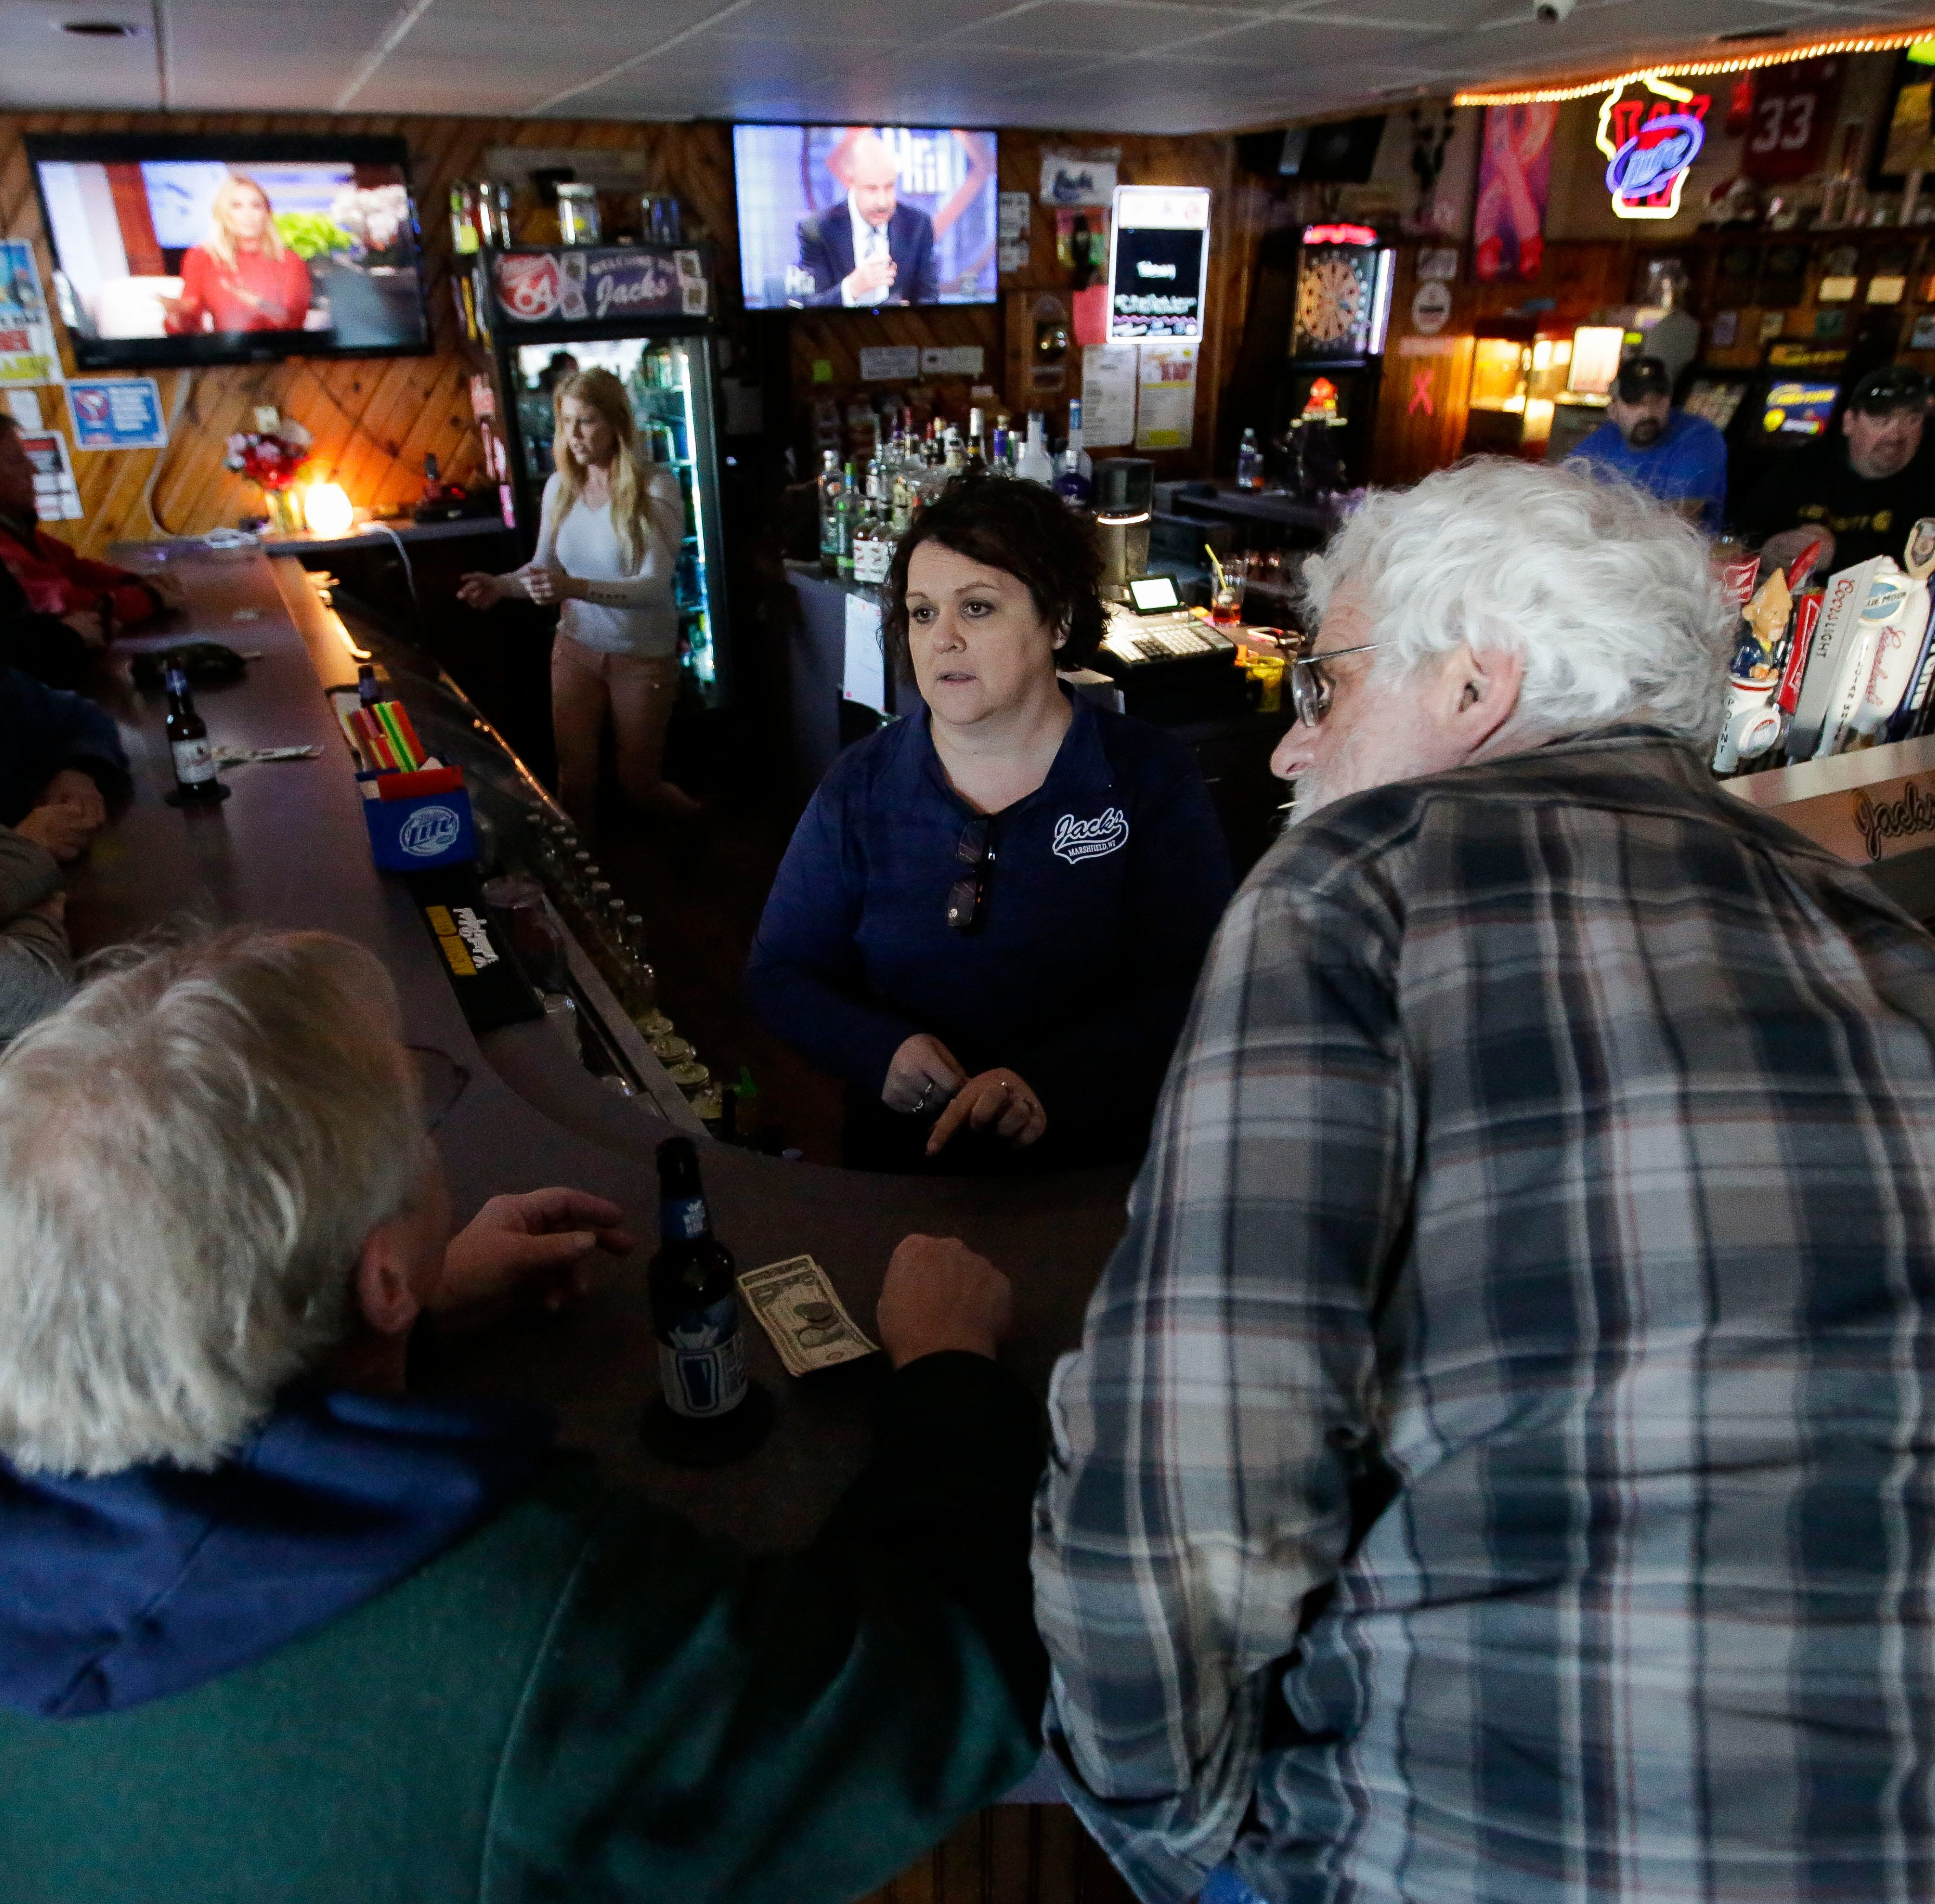 """We make you feel like family"": Jacks bar in Marshfield bursts with personality"